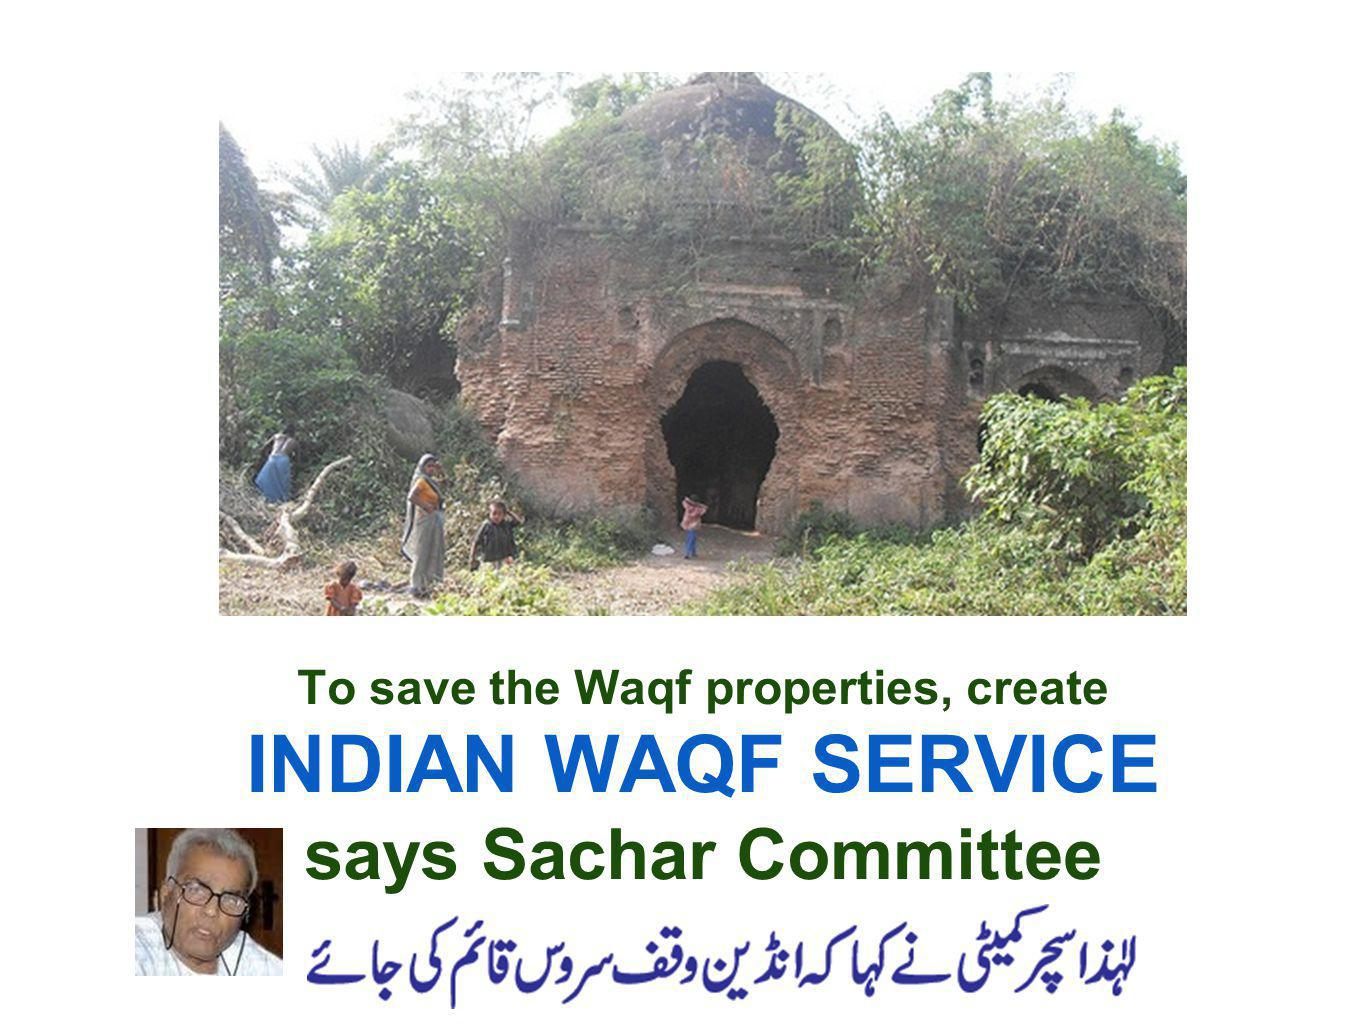 To save the Waqf properties, create INDIAN WAQF SERVICE says Sachar Committee